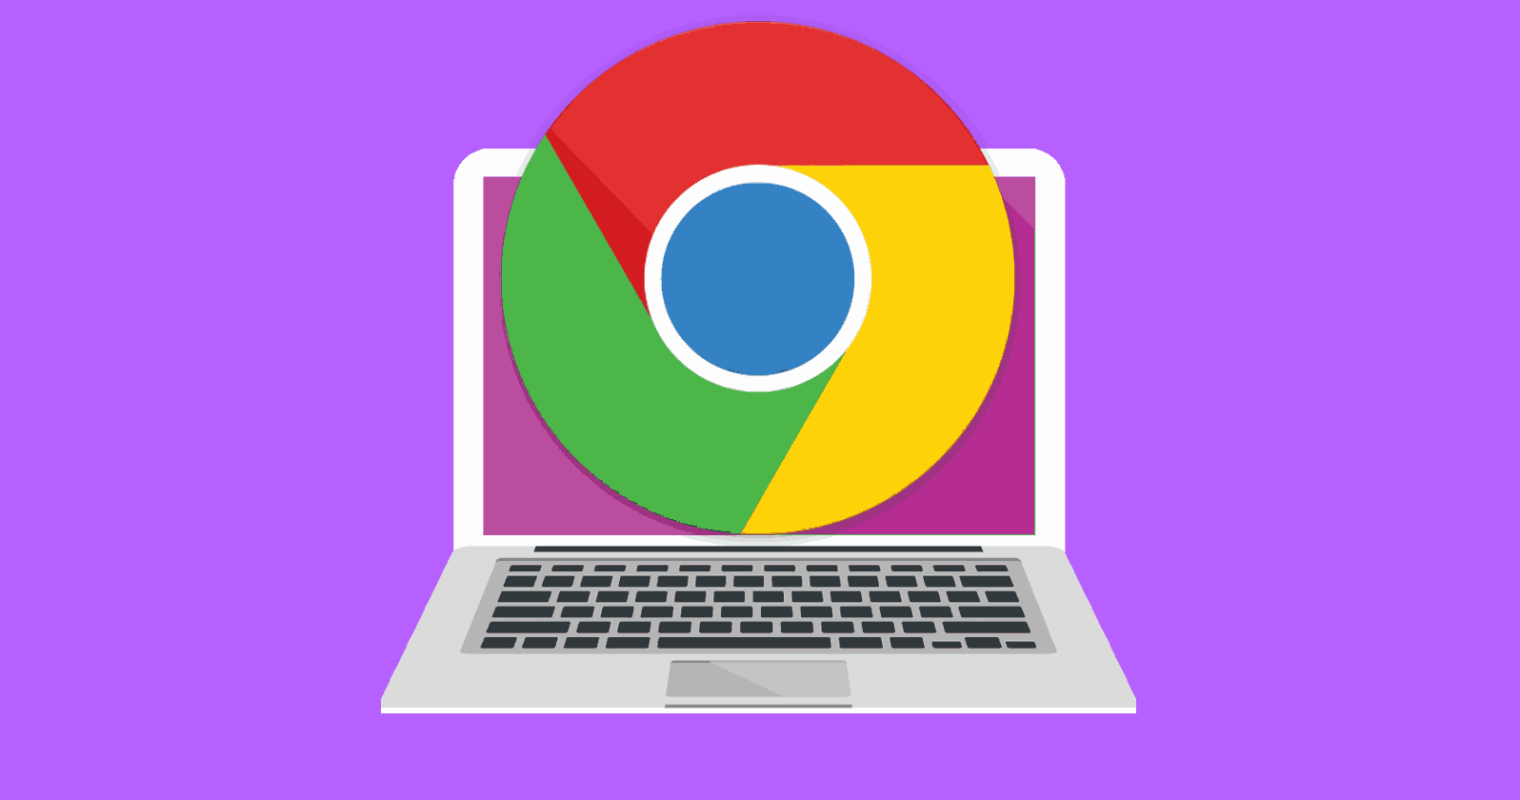 Chrome 85 Will Set Website Referrer Headers if Missing